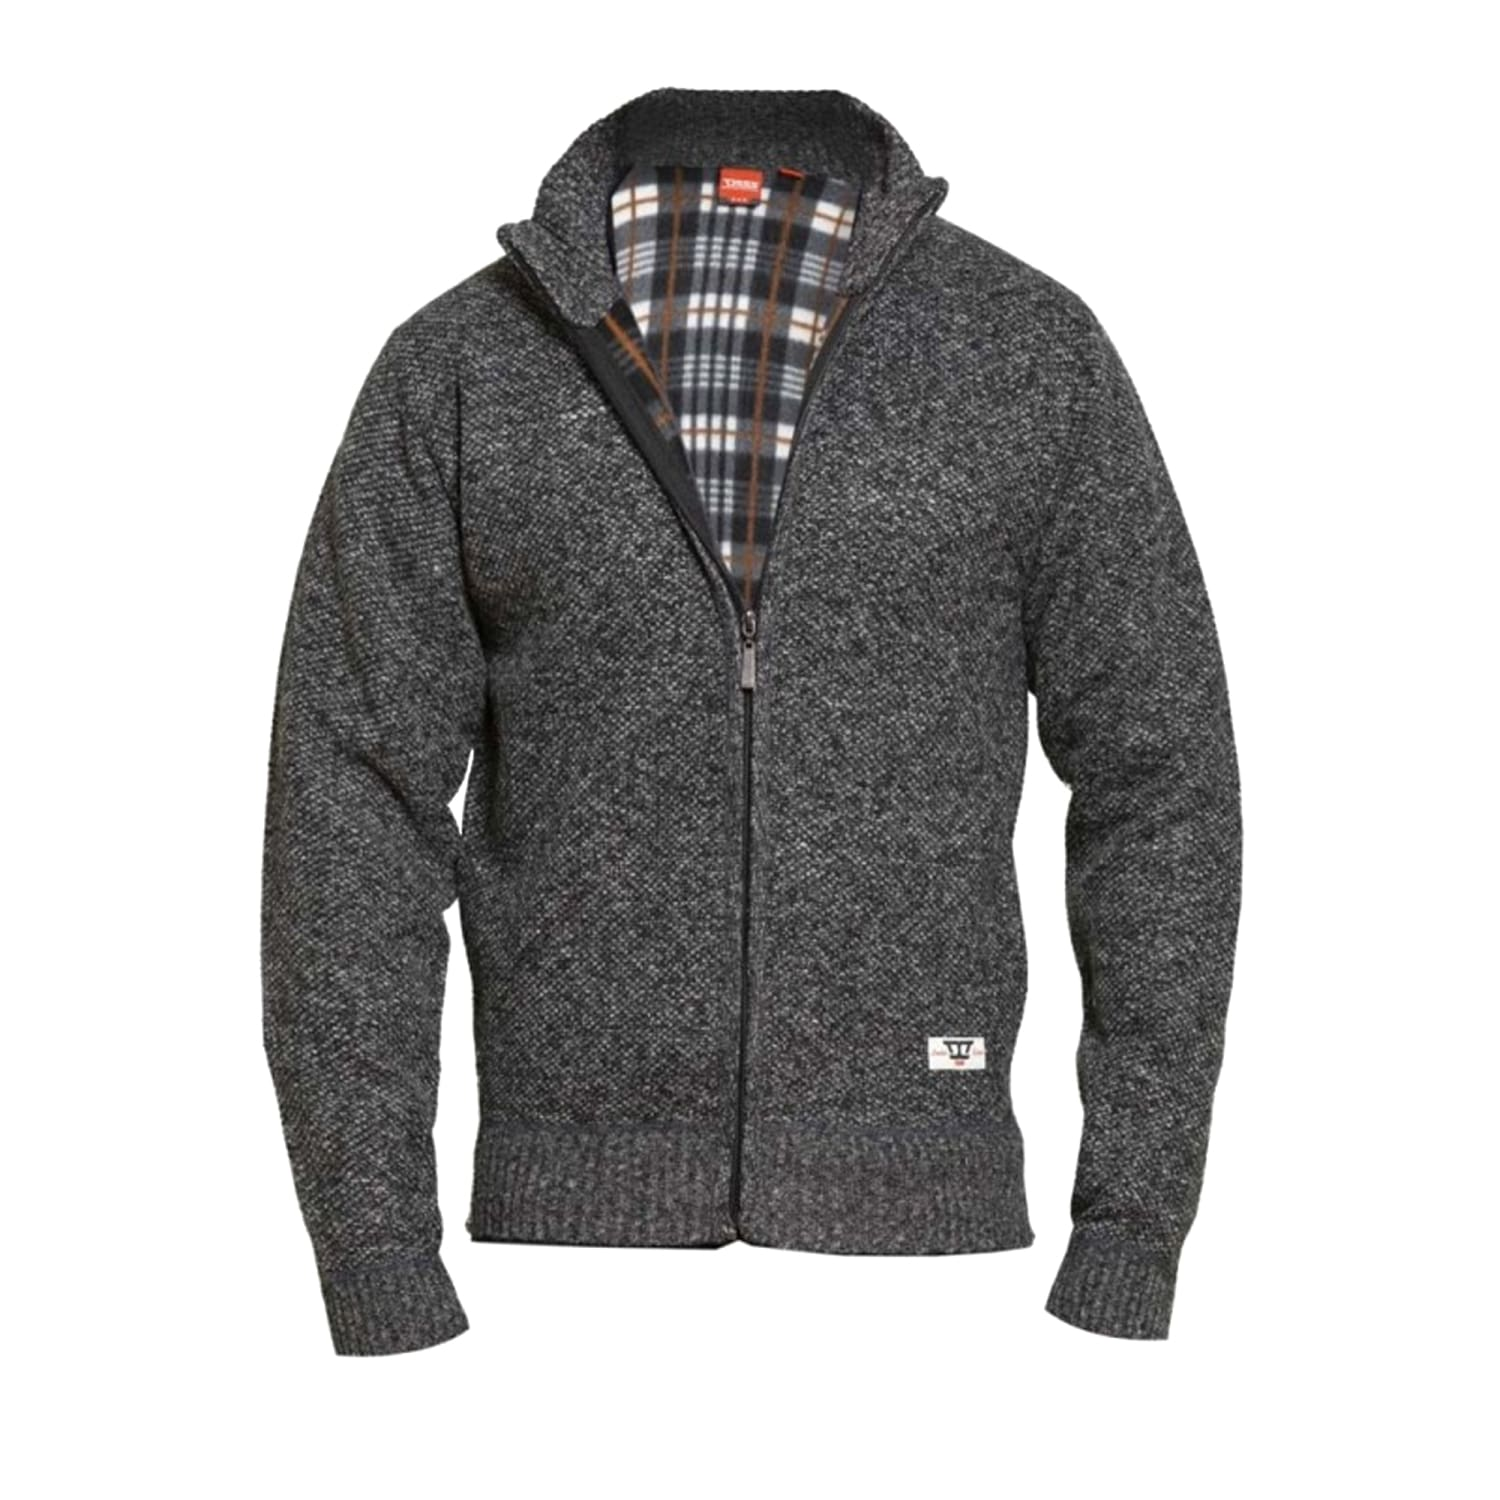 D555 Full Zip Sweater - KS80550 - Braxton - Charcoal Marl 1